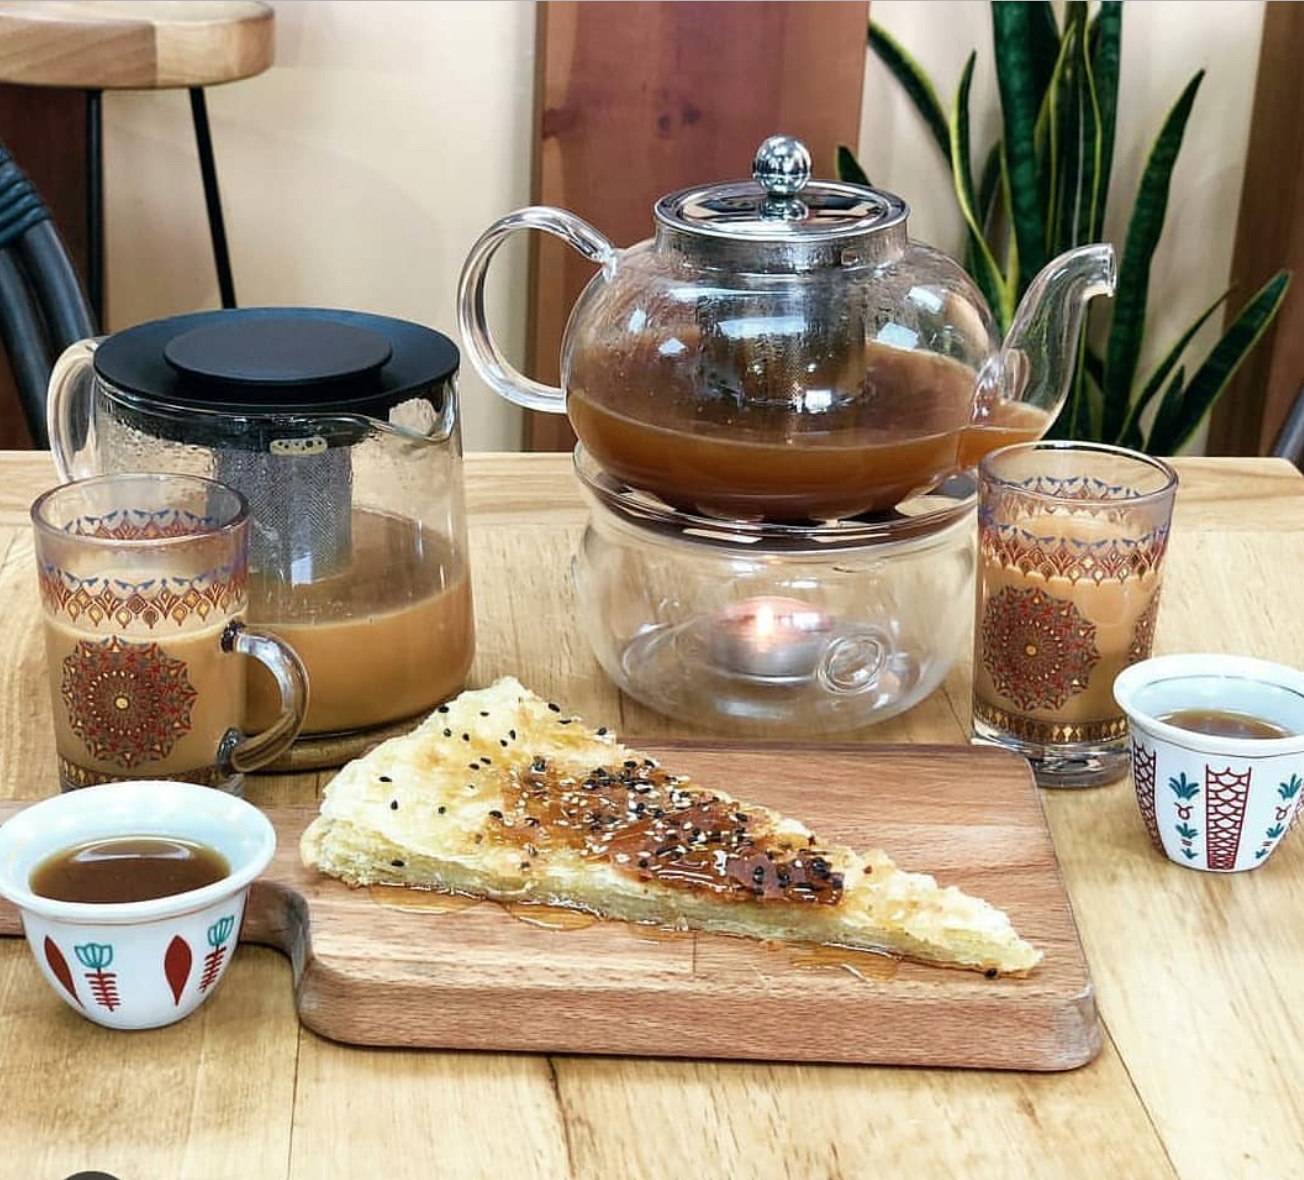 Photo of coffee and pastries from Qahwah House